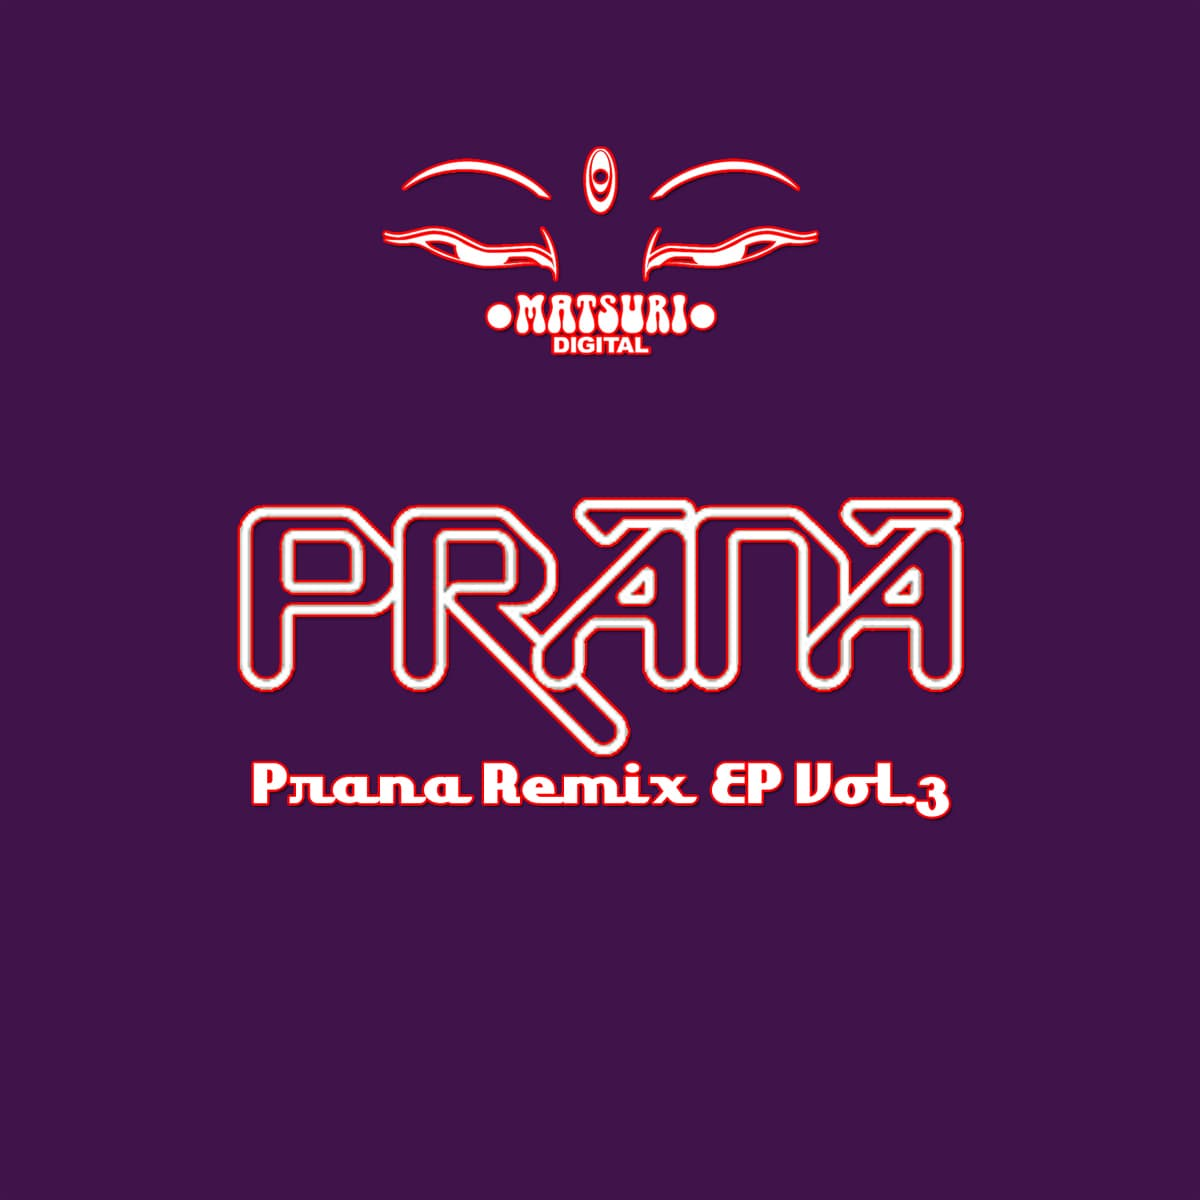 PRANA REMIX EP Vol.3